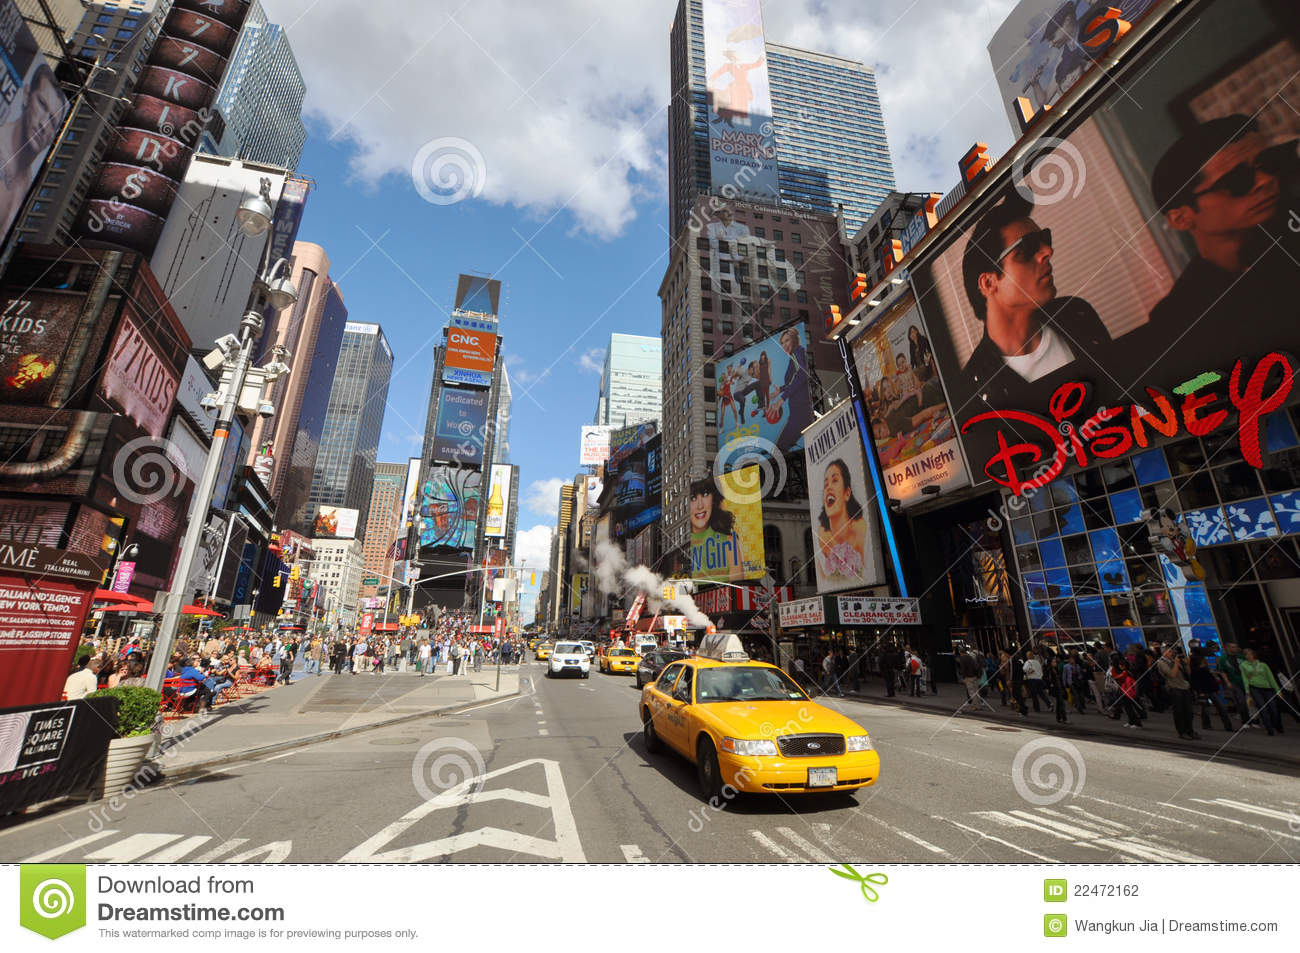 7th Ave and Times Square, New York City